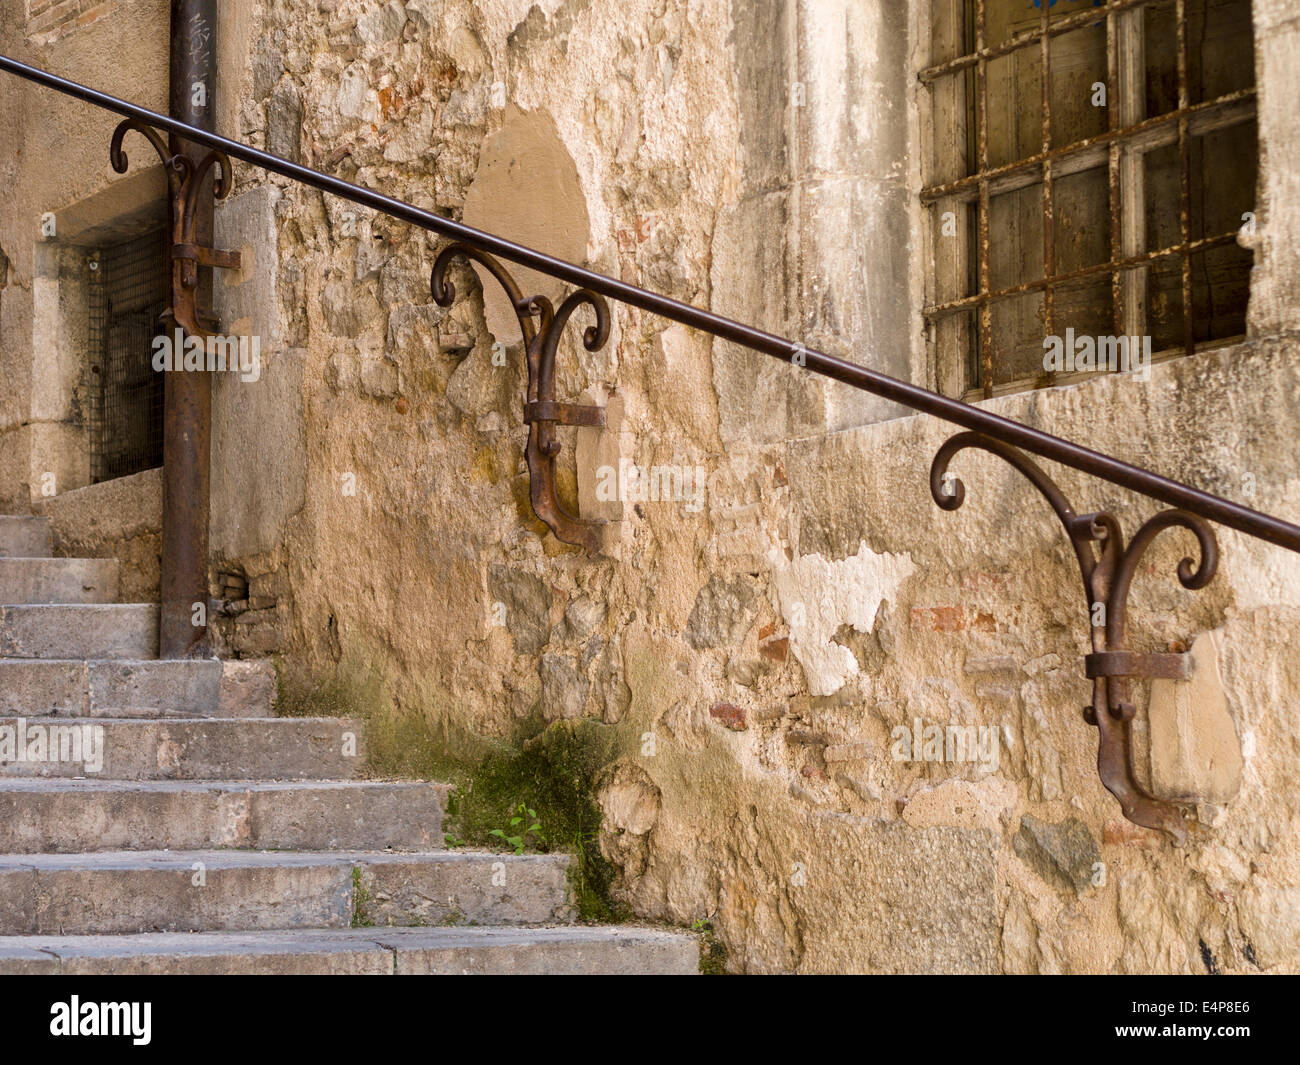 Iron Handrails on Girona's Stepped streets. Detail of a handrail on Girona's steep streets. - Stock Image